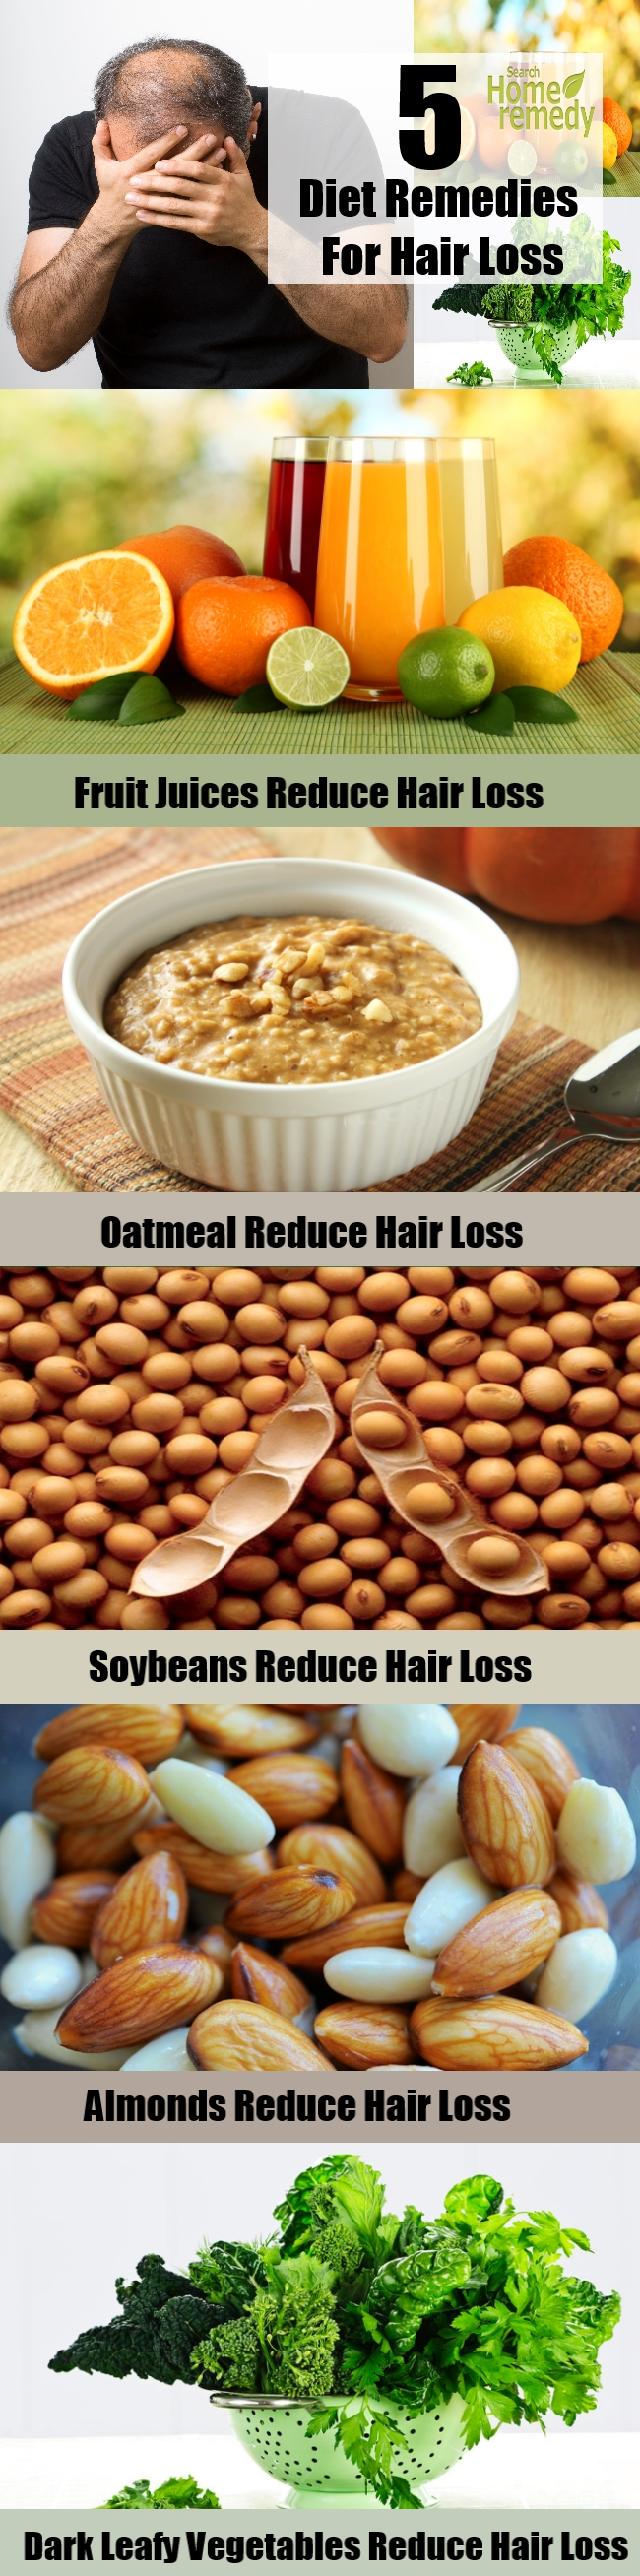 5 Diet Remedies For Hair Loss